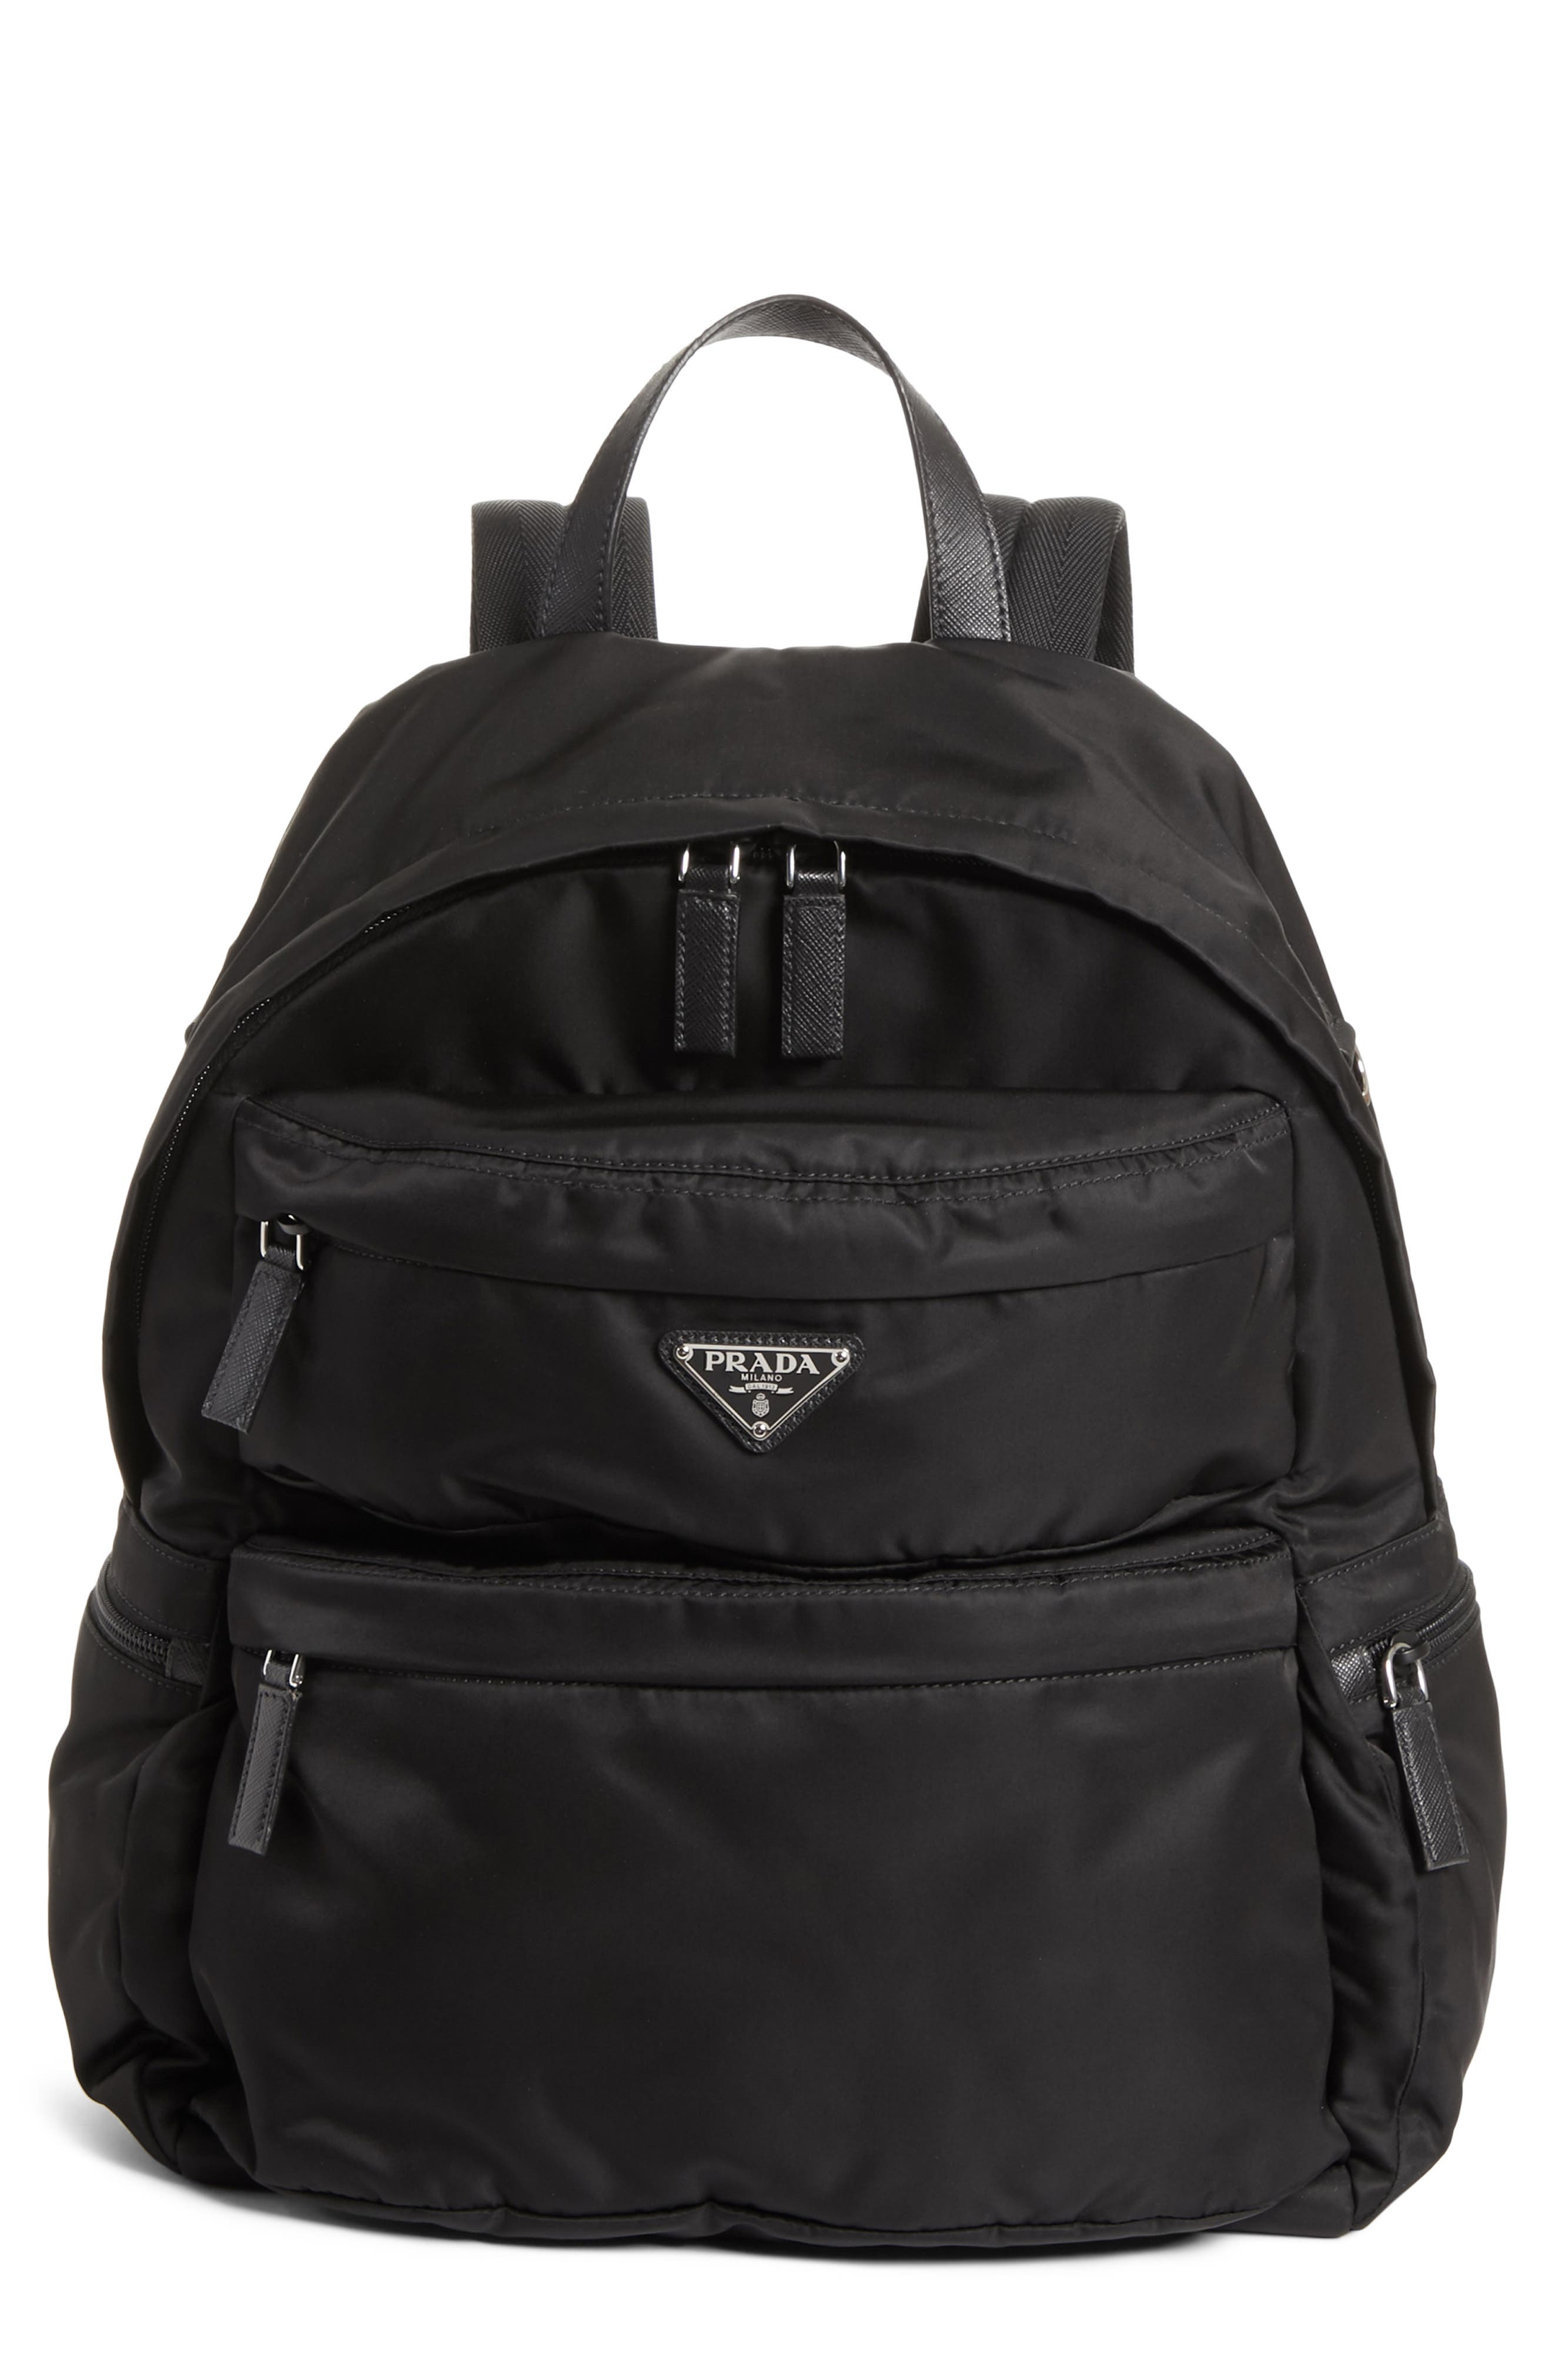 e3bb88ddc899 Men's Prada Bags & Backpacks | Nordstrom